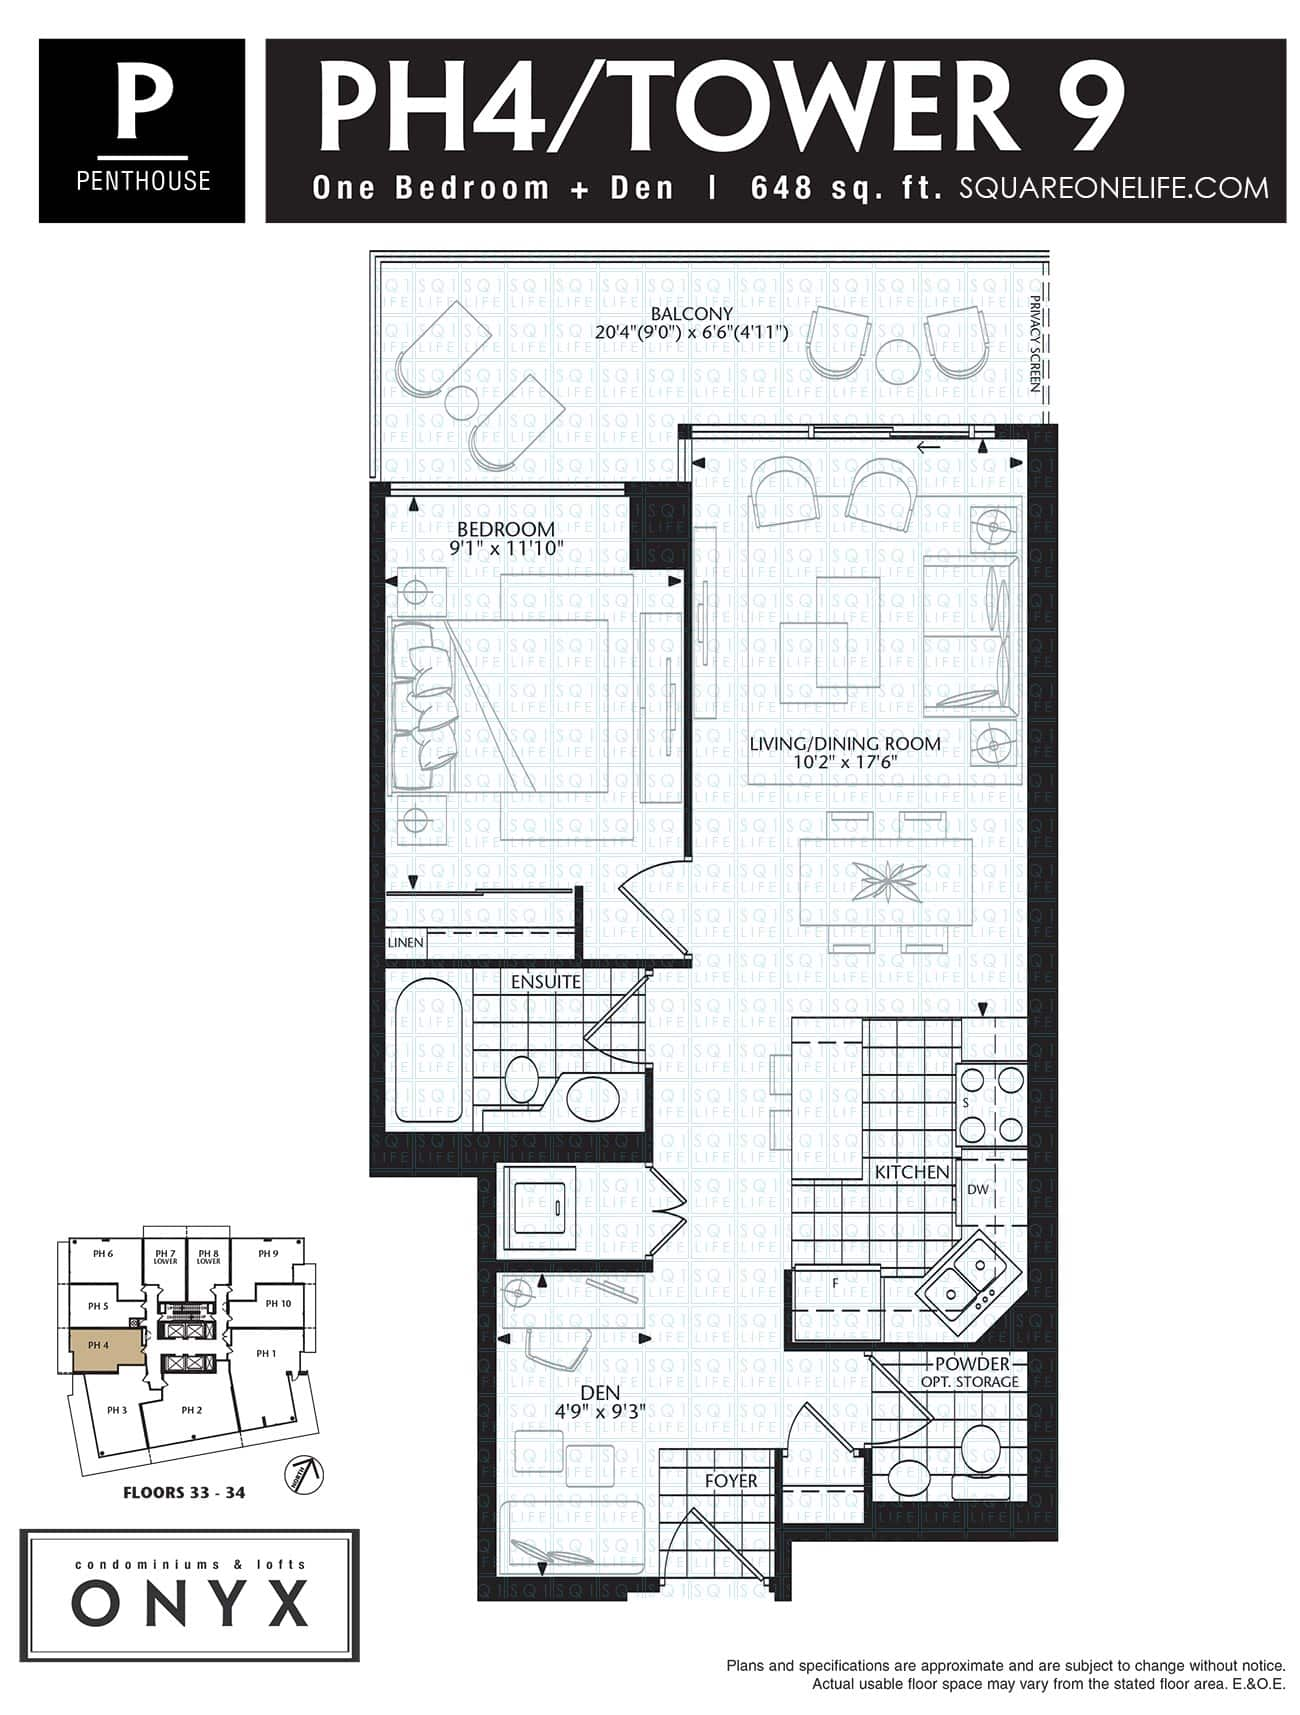 223-Webb-Dr-Onyx-Condo-Floorplan-PH4-1-Bed-1-Den onyx condo Onyx Condo 223 Webb Dr Onyx Condo Floorplan PH4 1 Bed 1 Den